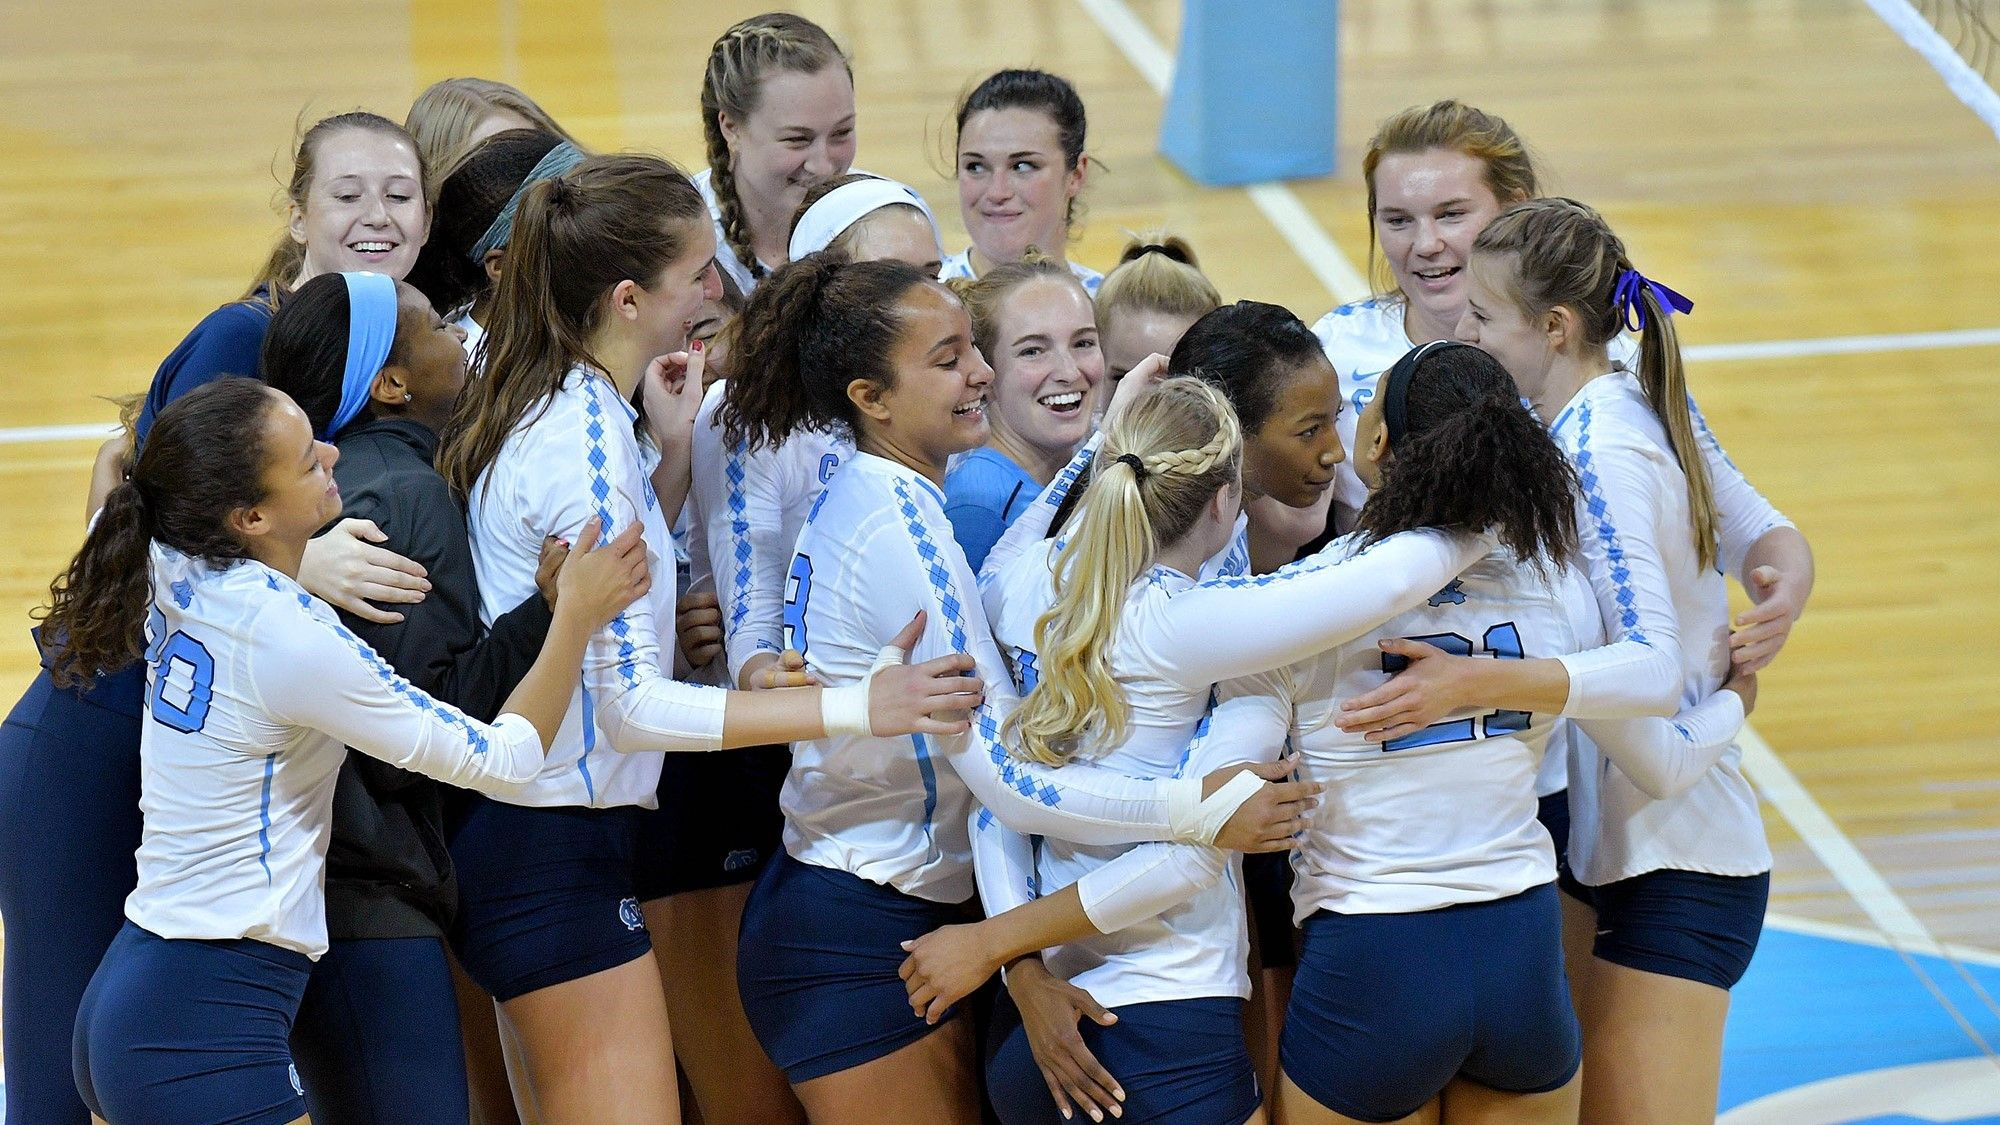 Chapel Hill Carolina Volleyball Is Excited To Announce The Schedule For The Upcoming 2017 Season The Fall Slate Which Feature Chapel Hill Chapel Volleyball